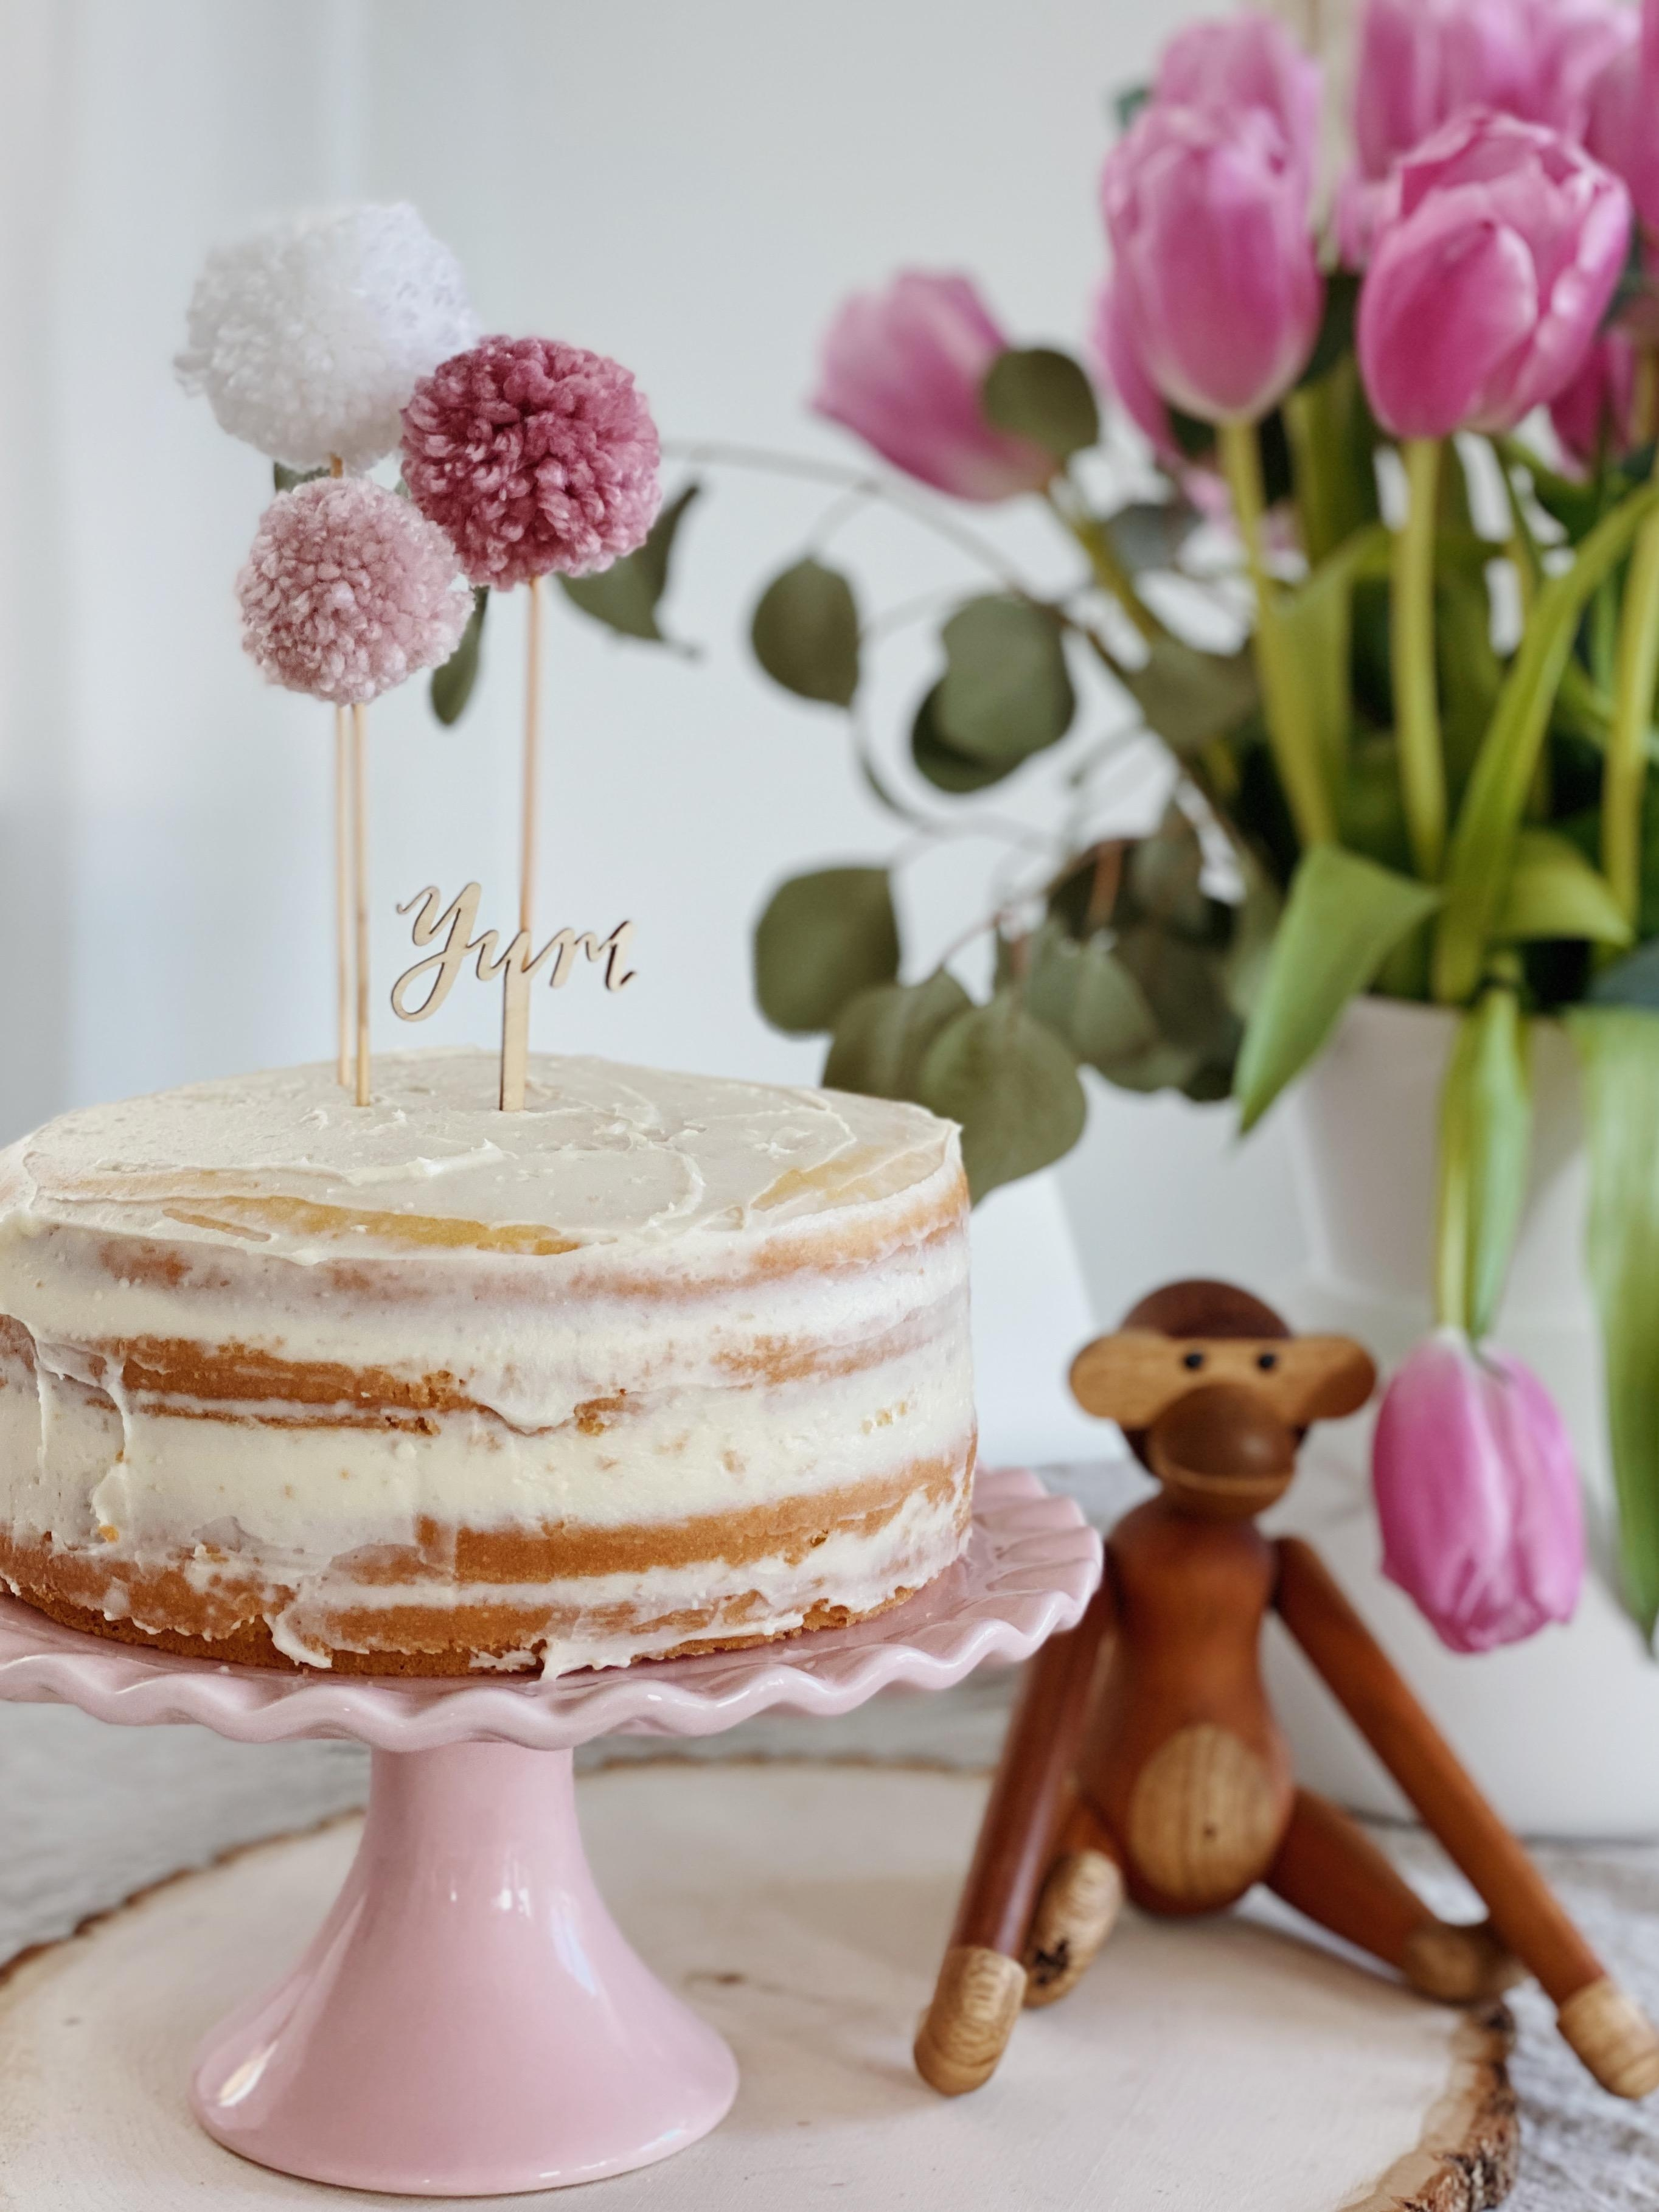 Weekends are for cake #kuchenliebe #selberbacken #caketopper #diy #cake